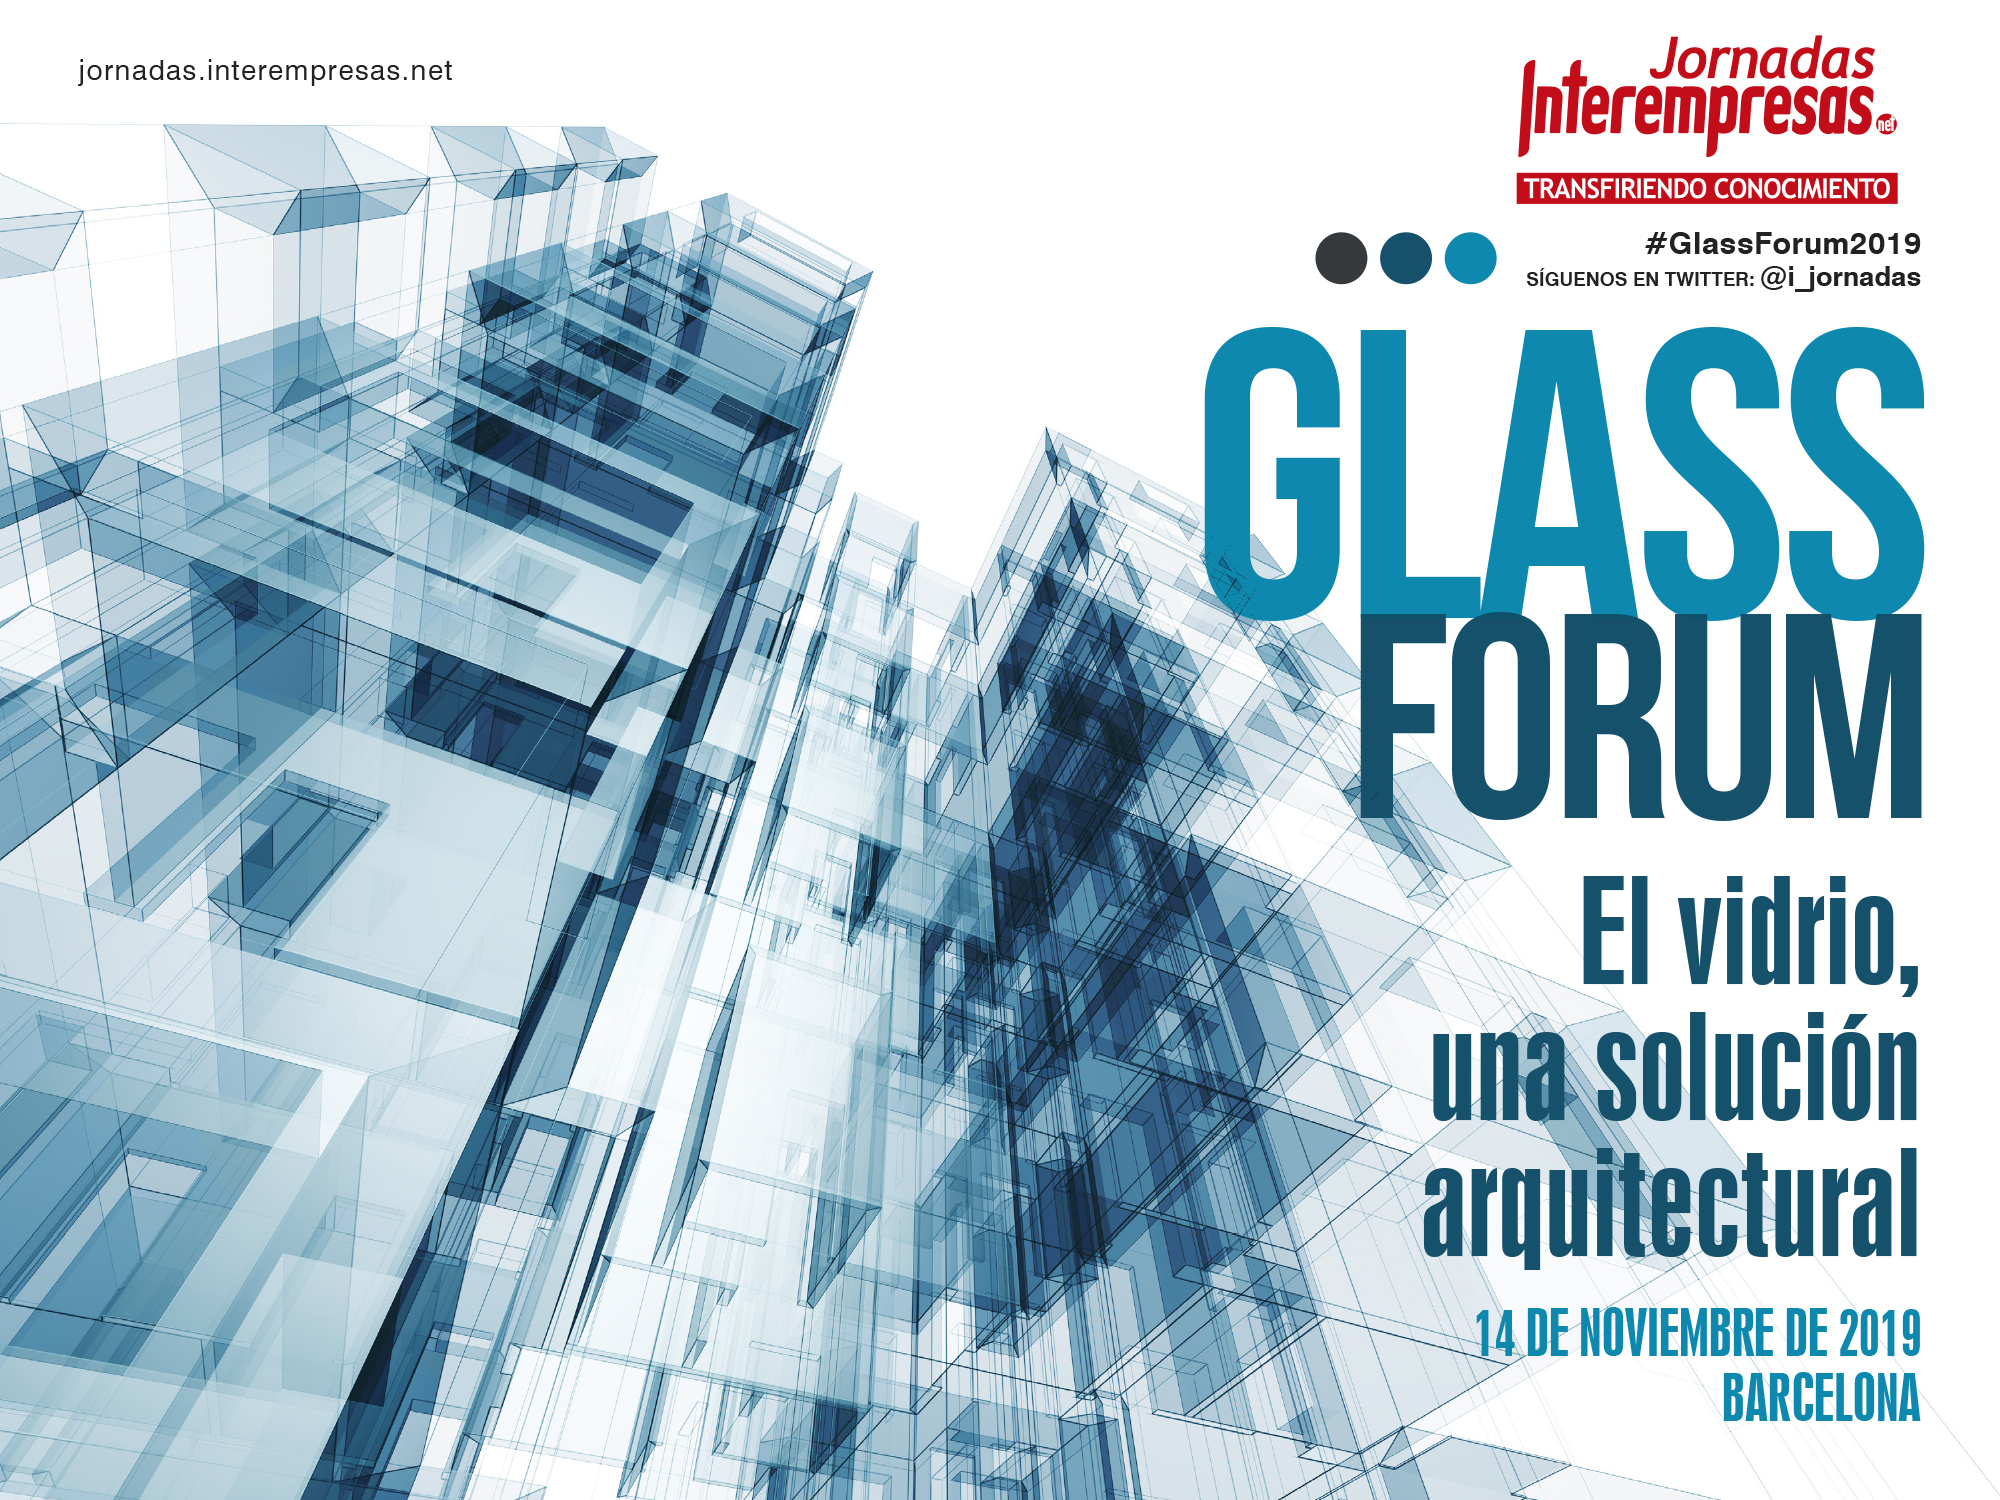 cartel de Glass Forum